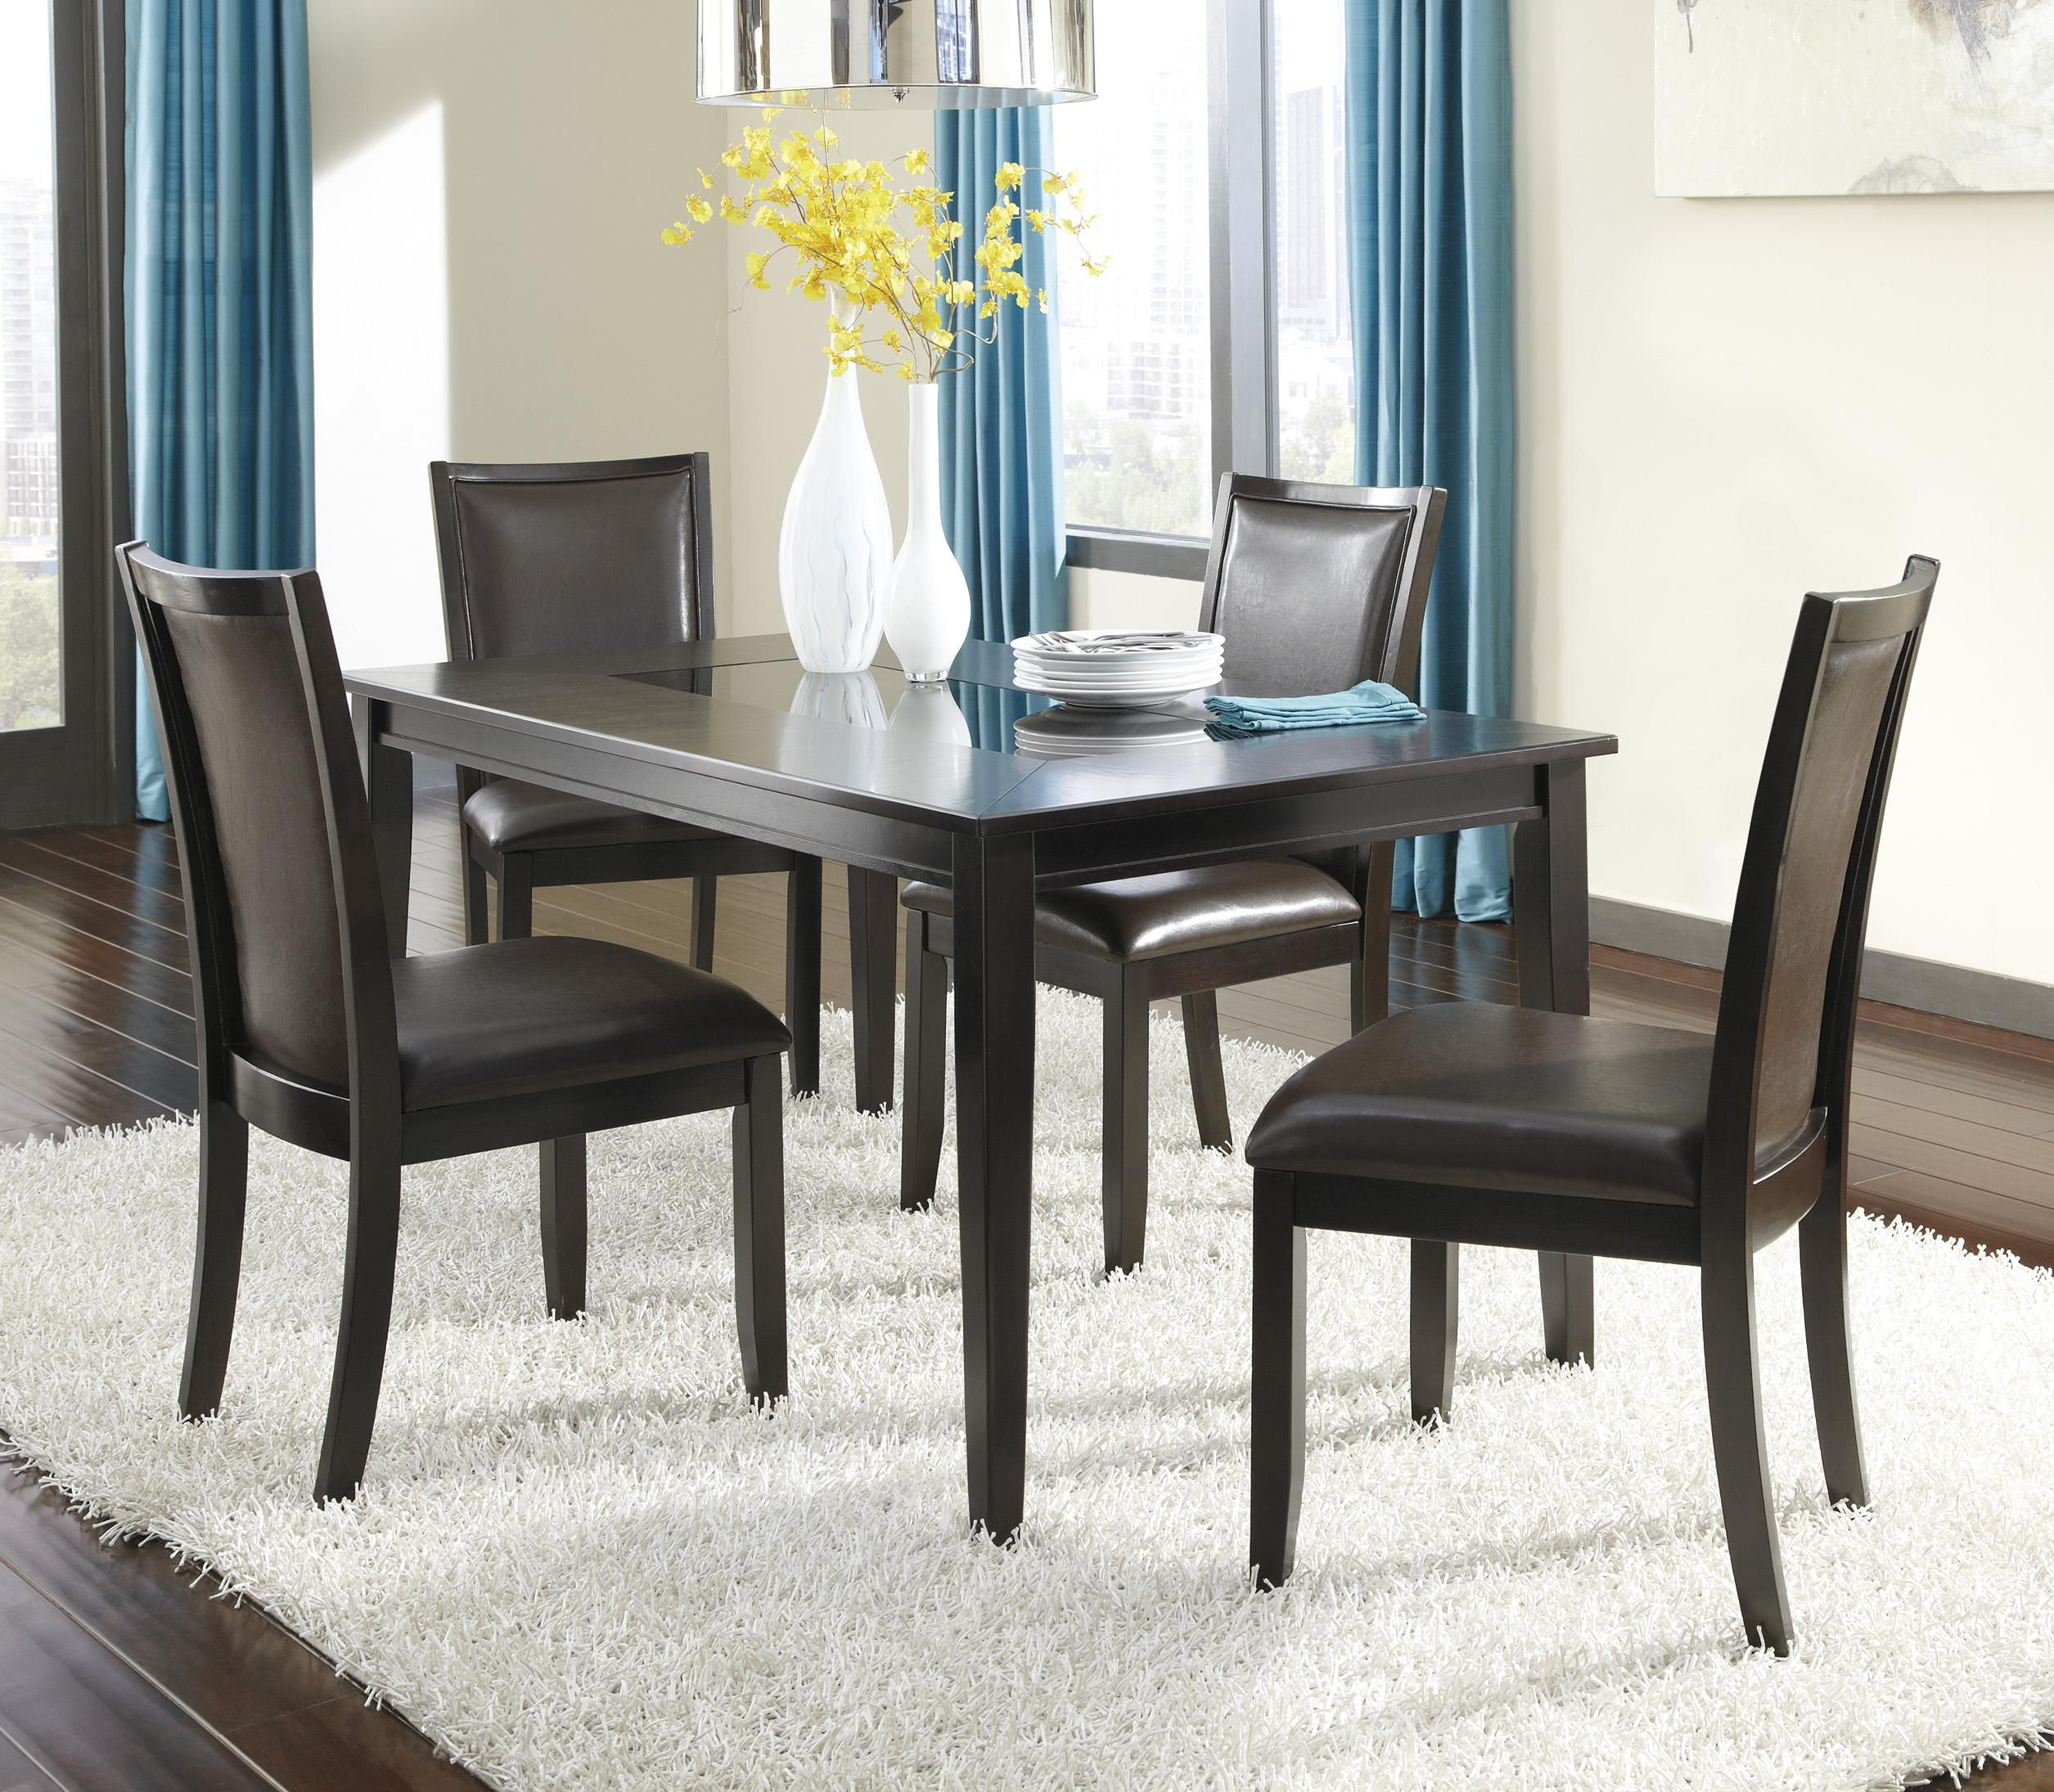 Ashley Furniture Trishelle 5 Piece Rectangular Dining Table Set With Brown Chairs